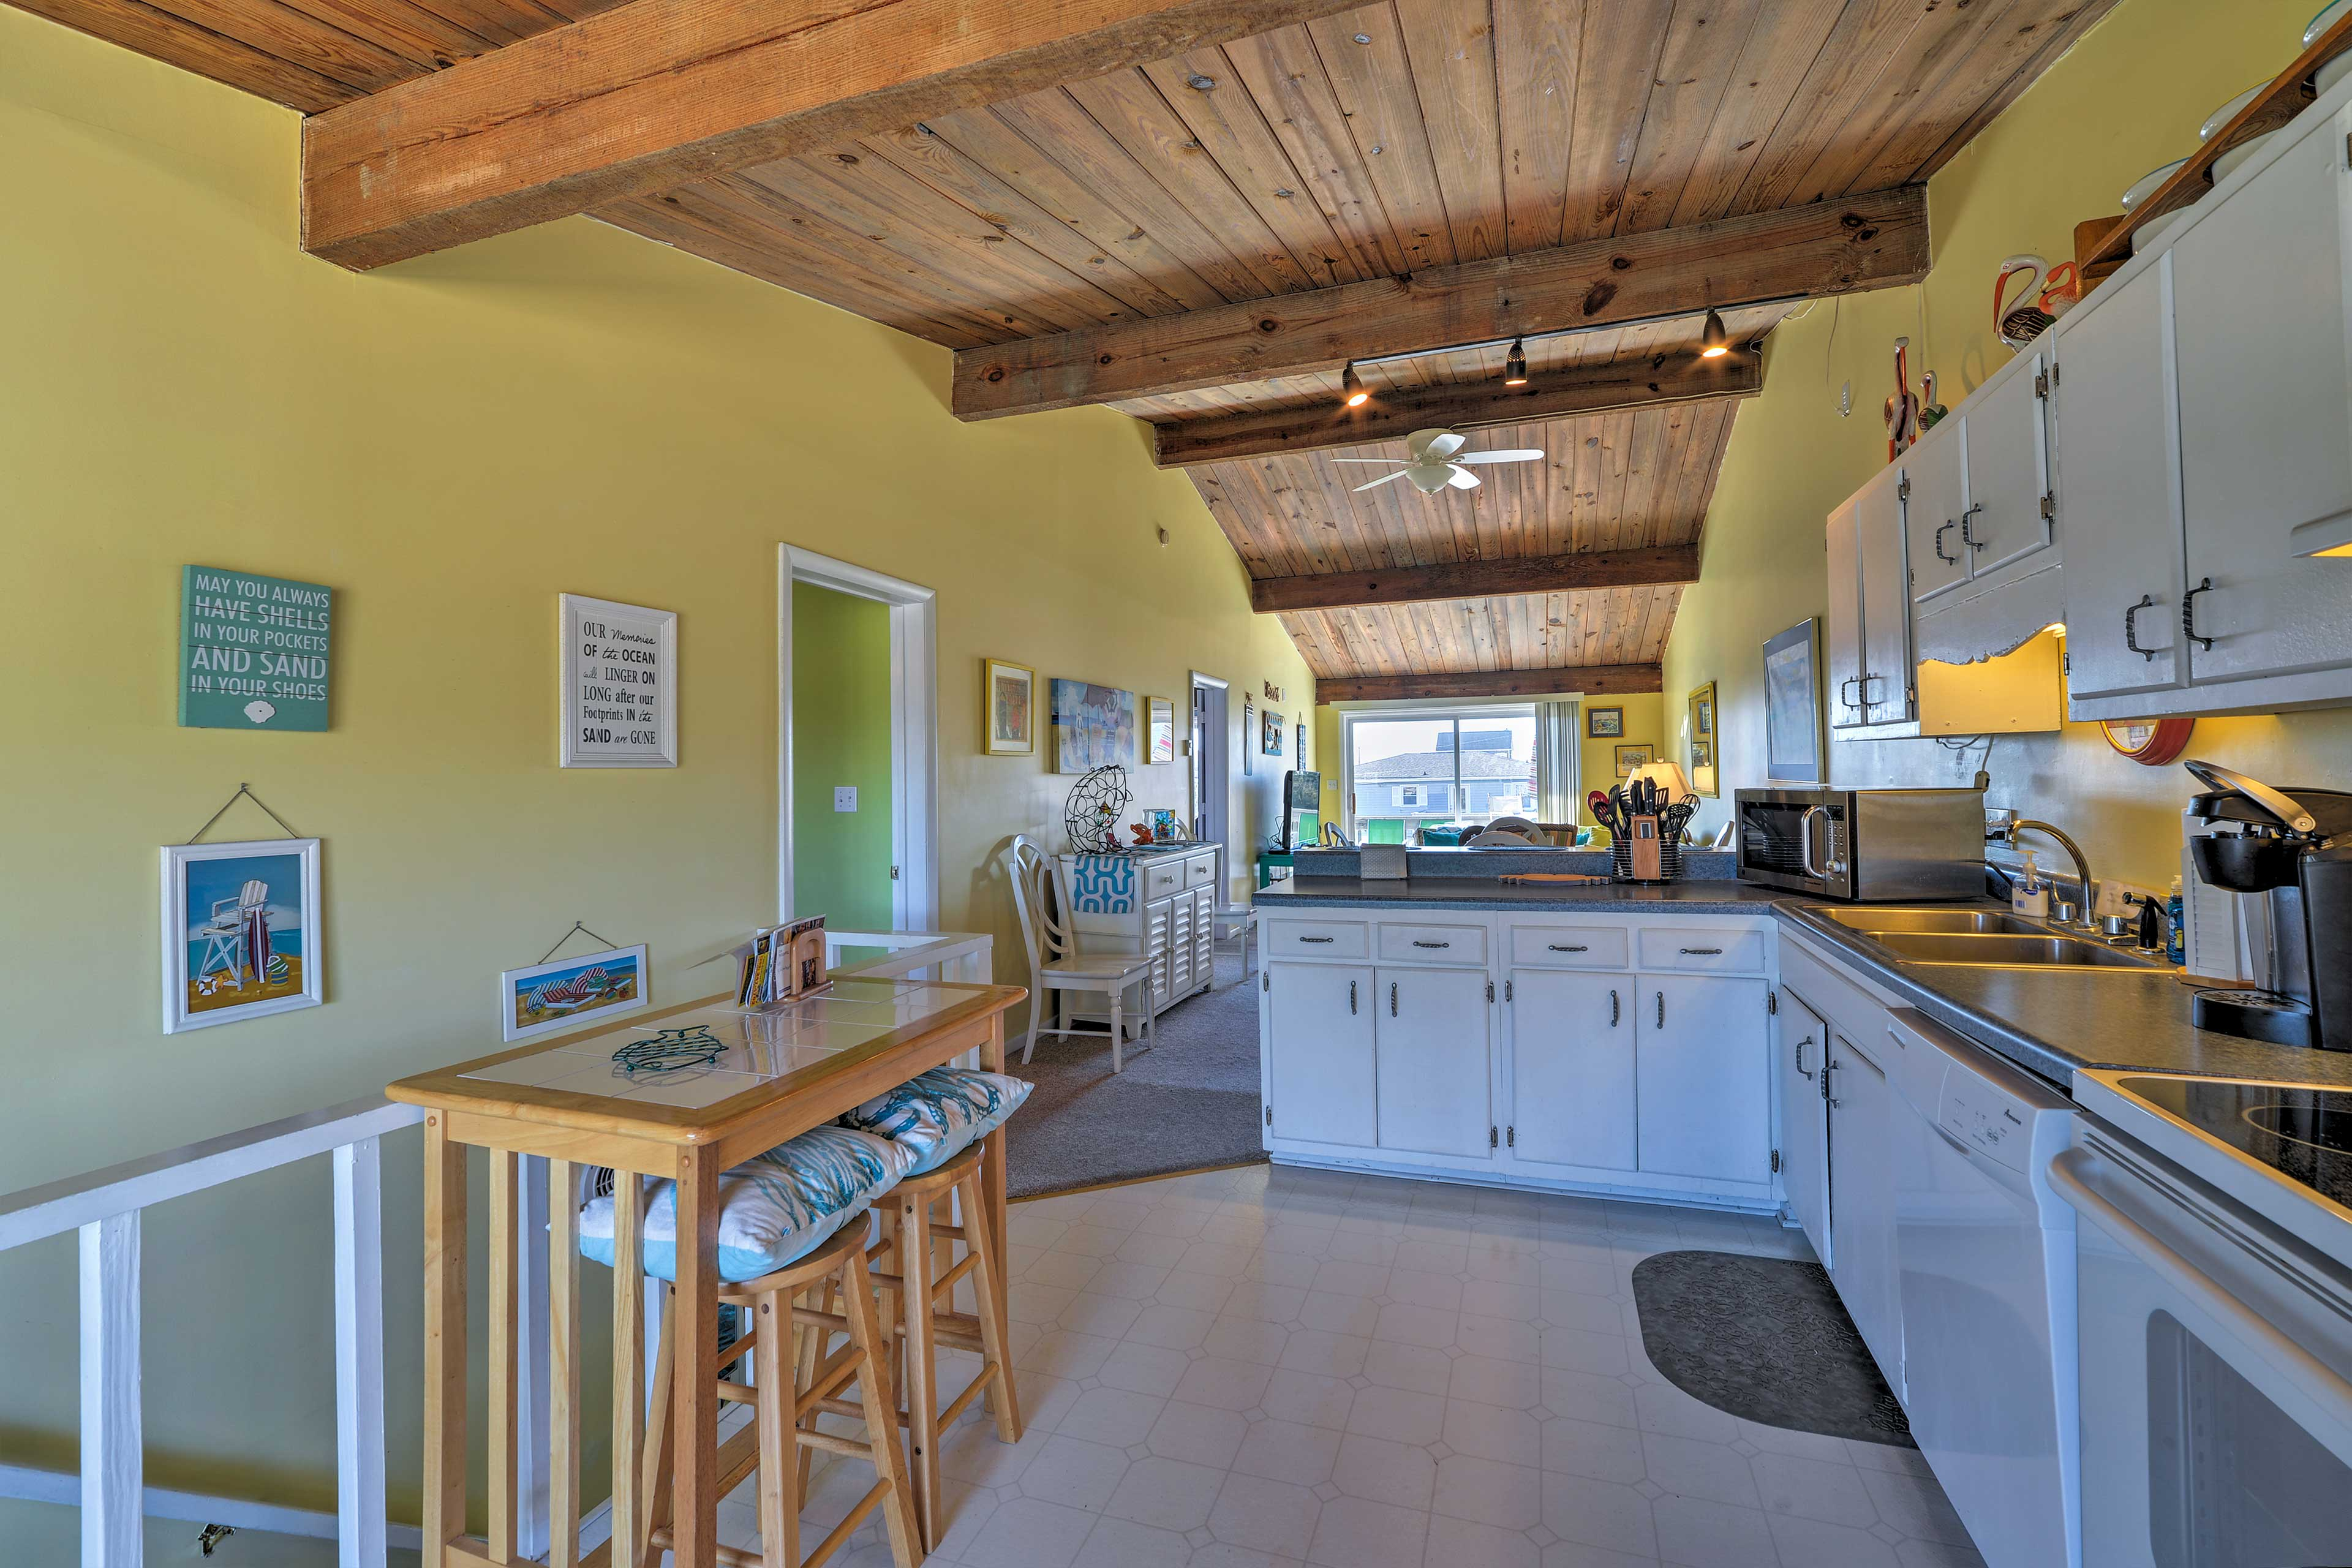 Extra stools and prep space will make cooking a breeze!